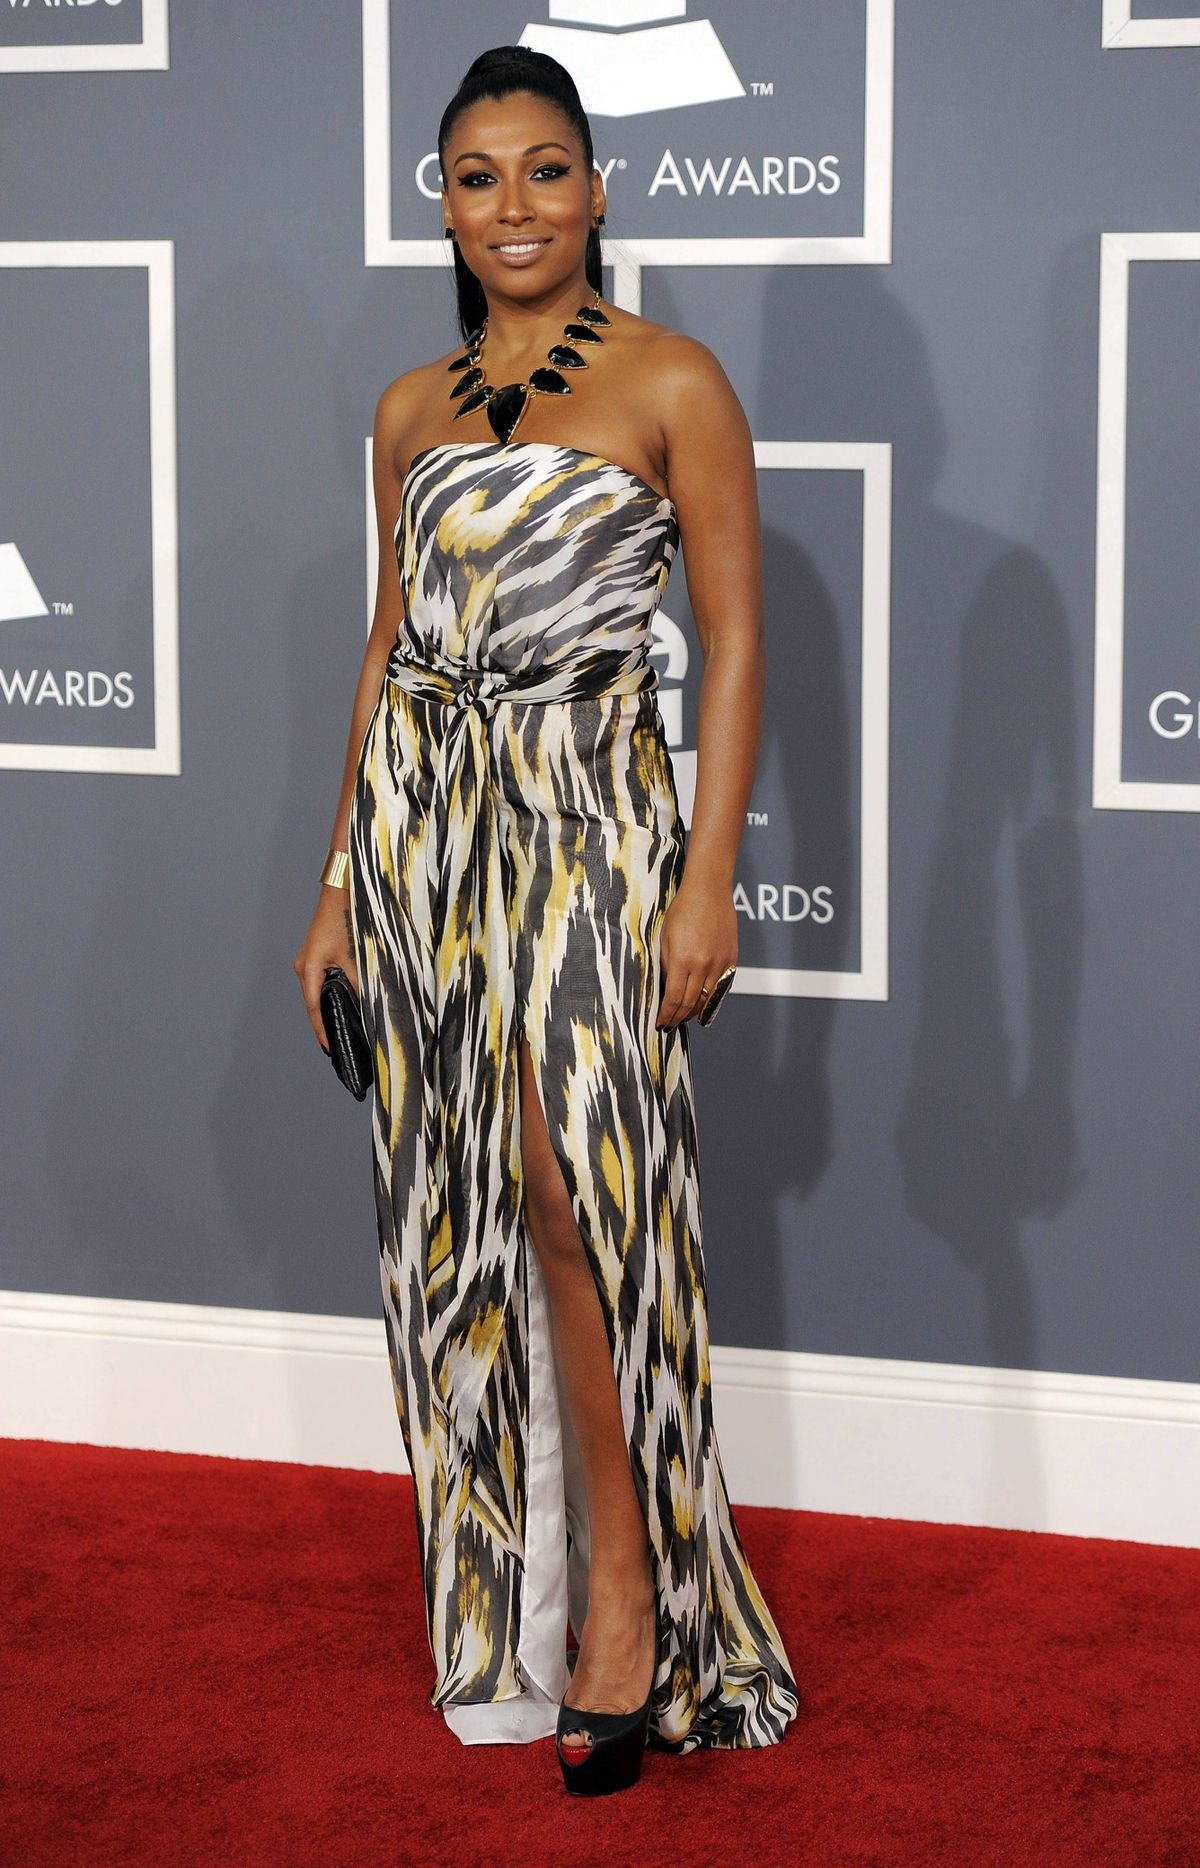 Melanie Fiona arrives at the 54th annual GRAMMY Awards on Sunday, Feb. 12, 2012 in Los Angeles.